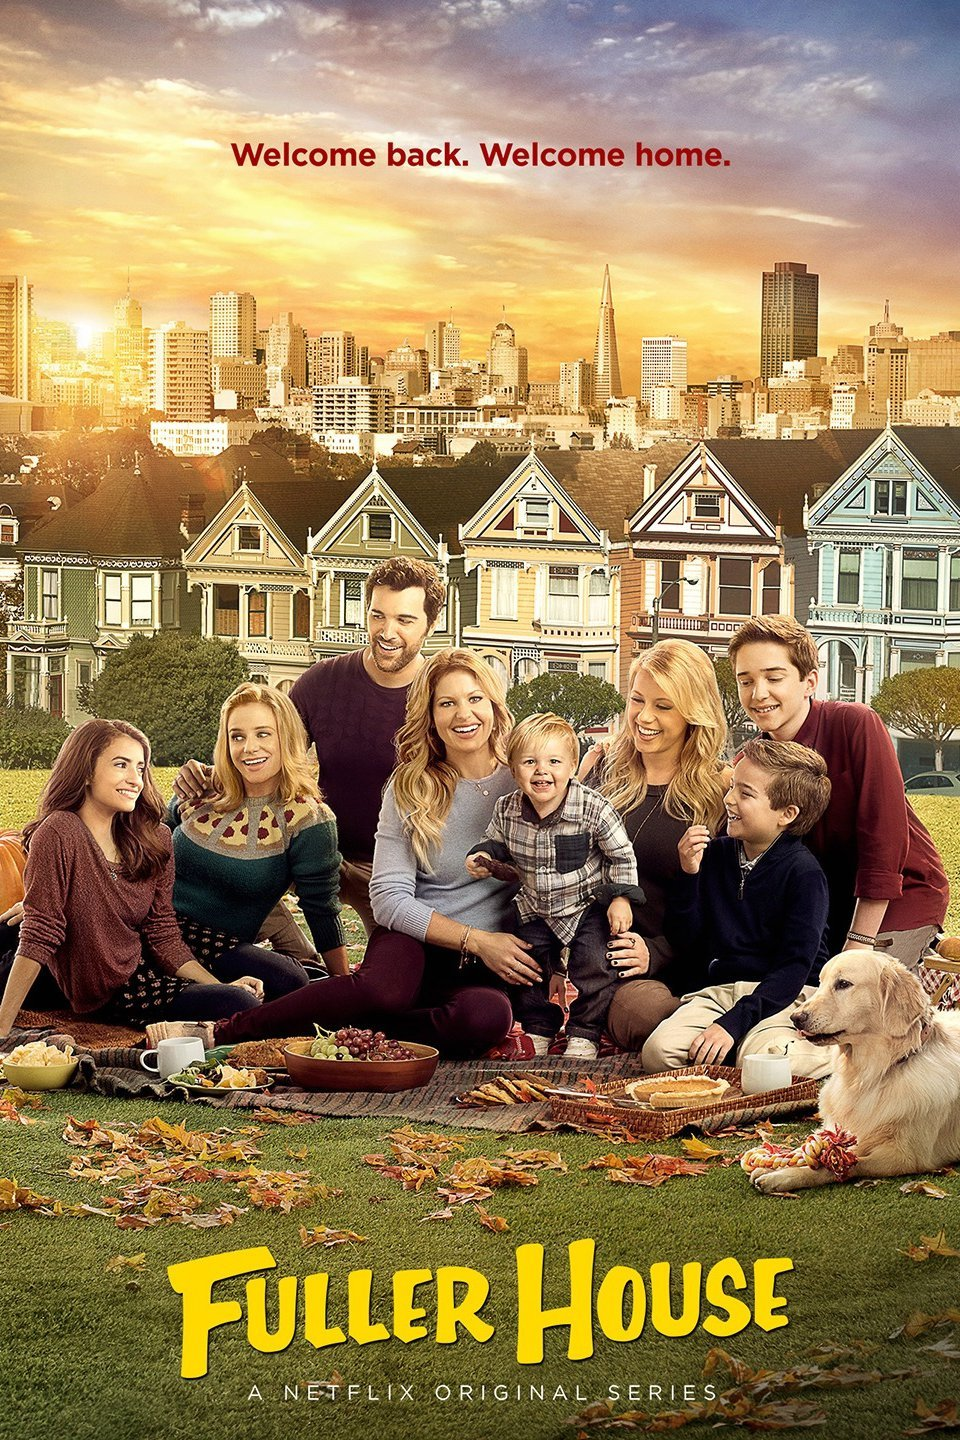 Fuller House Season 3 Episode 1 Download HDTV